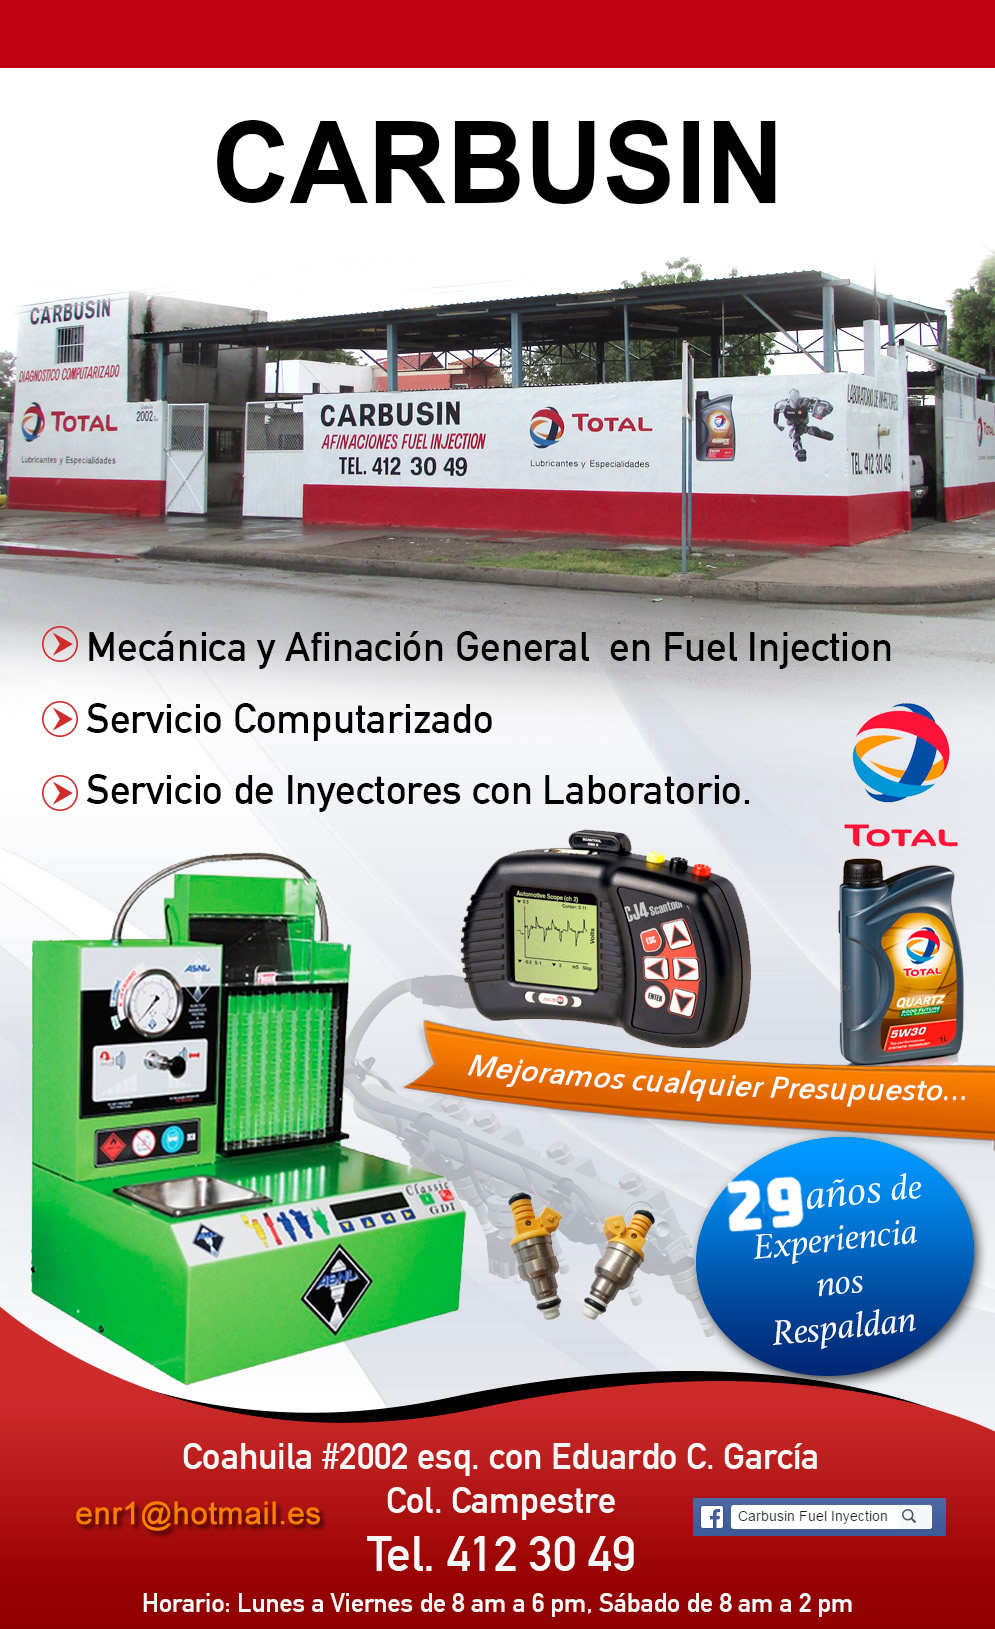 Carbusin Fuel Injection-Servicio Completo Fuel Injection 29 años de Experiencia Gracias a su Preferencia!